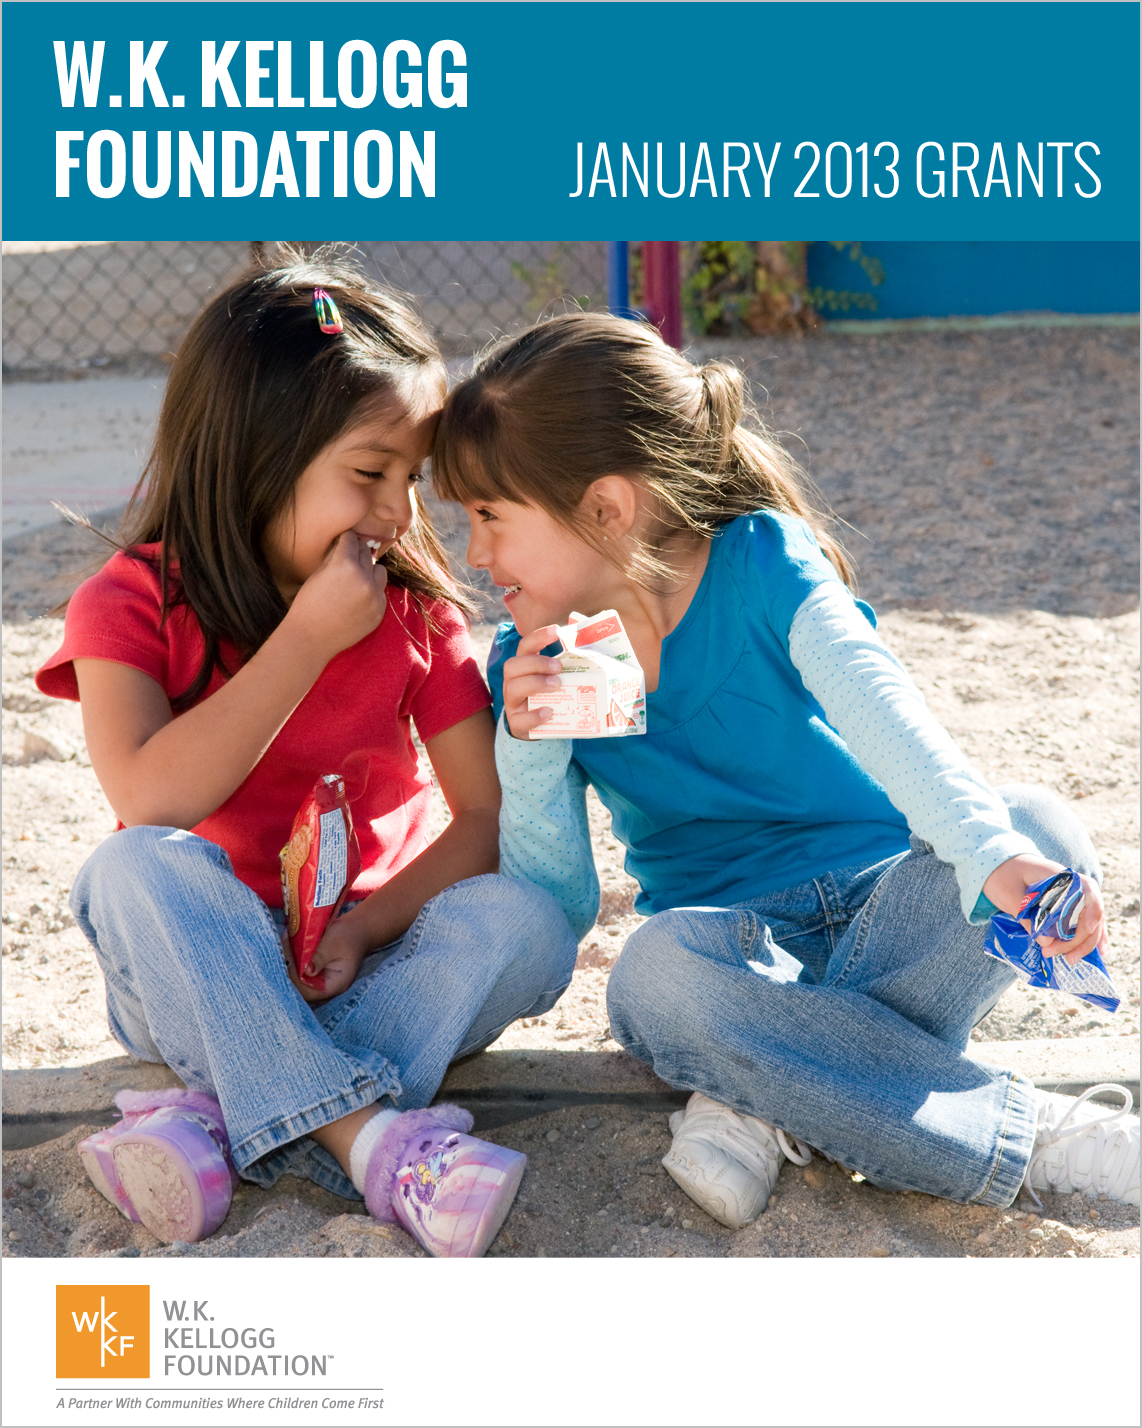 W.K. Kellogg Foundation Grants - January 2013